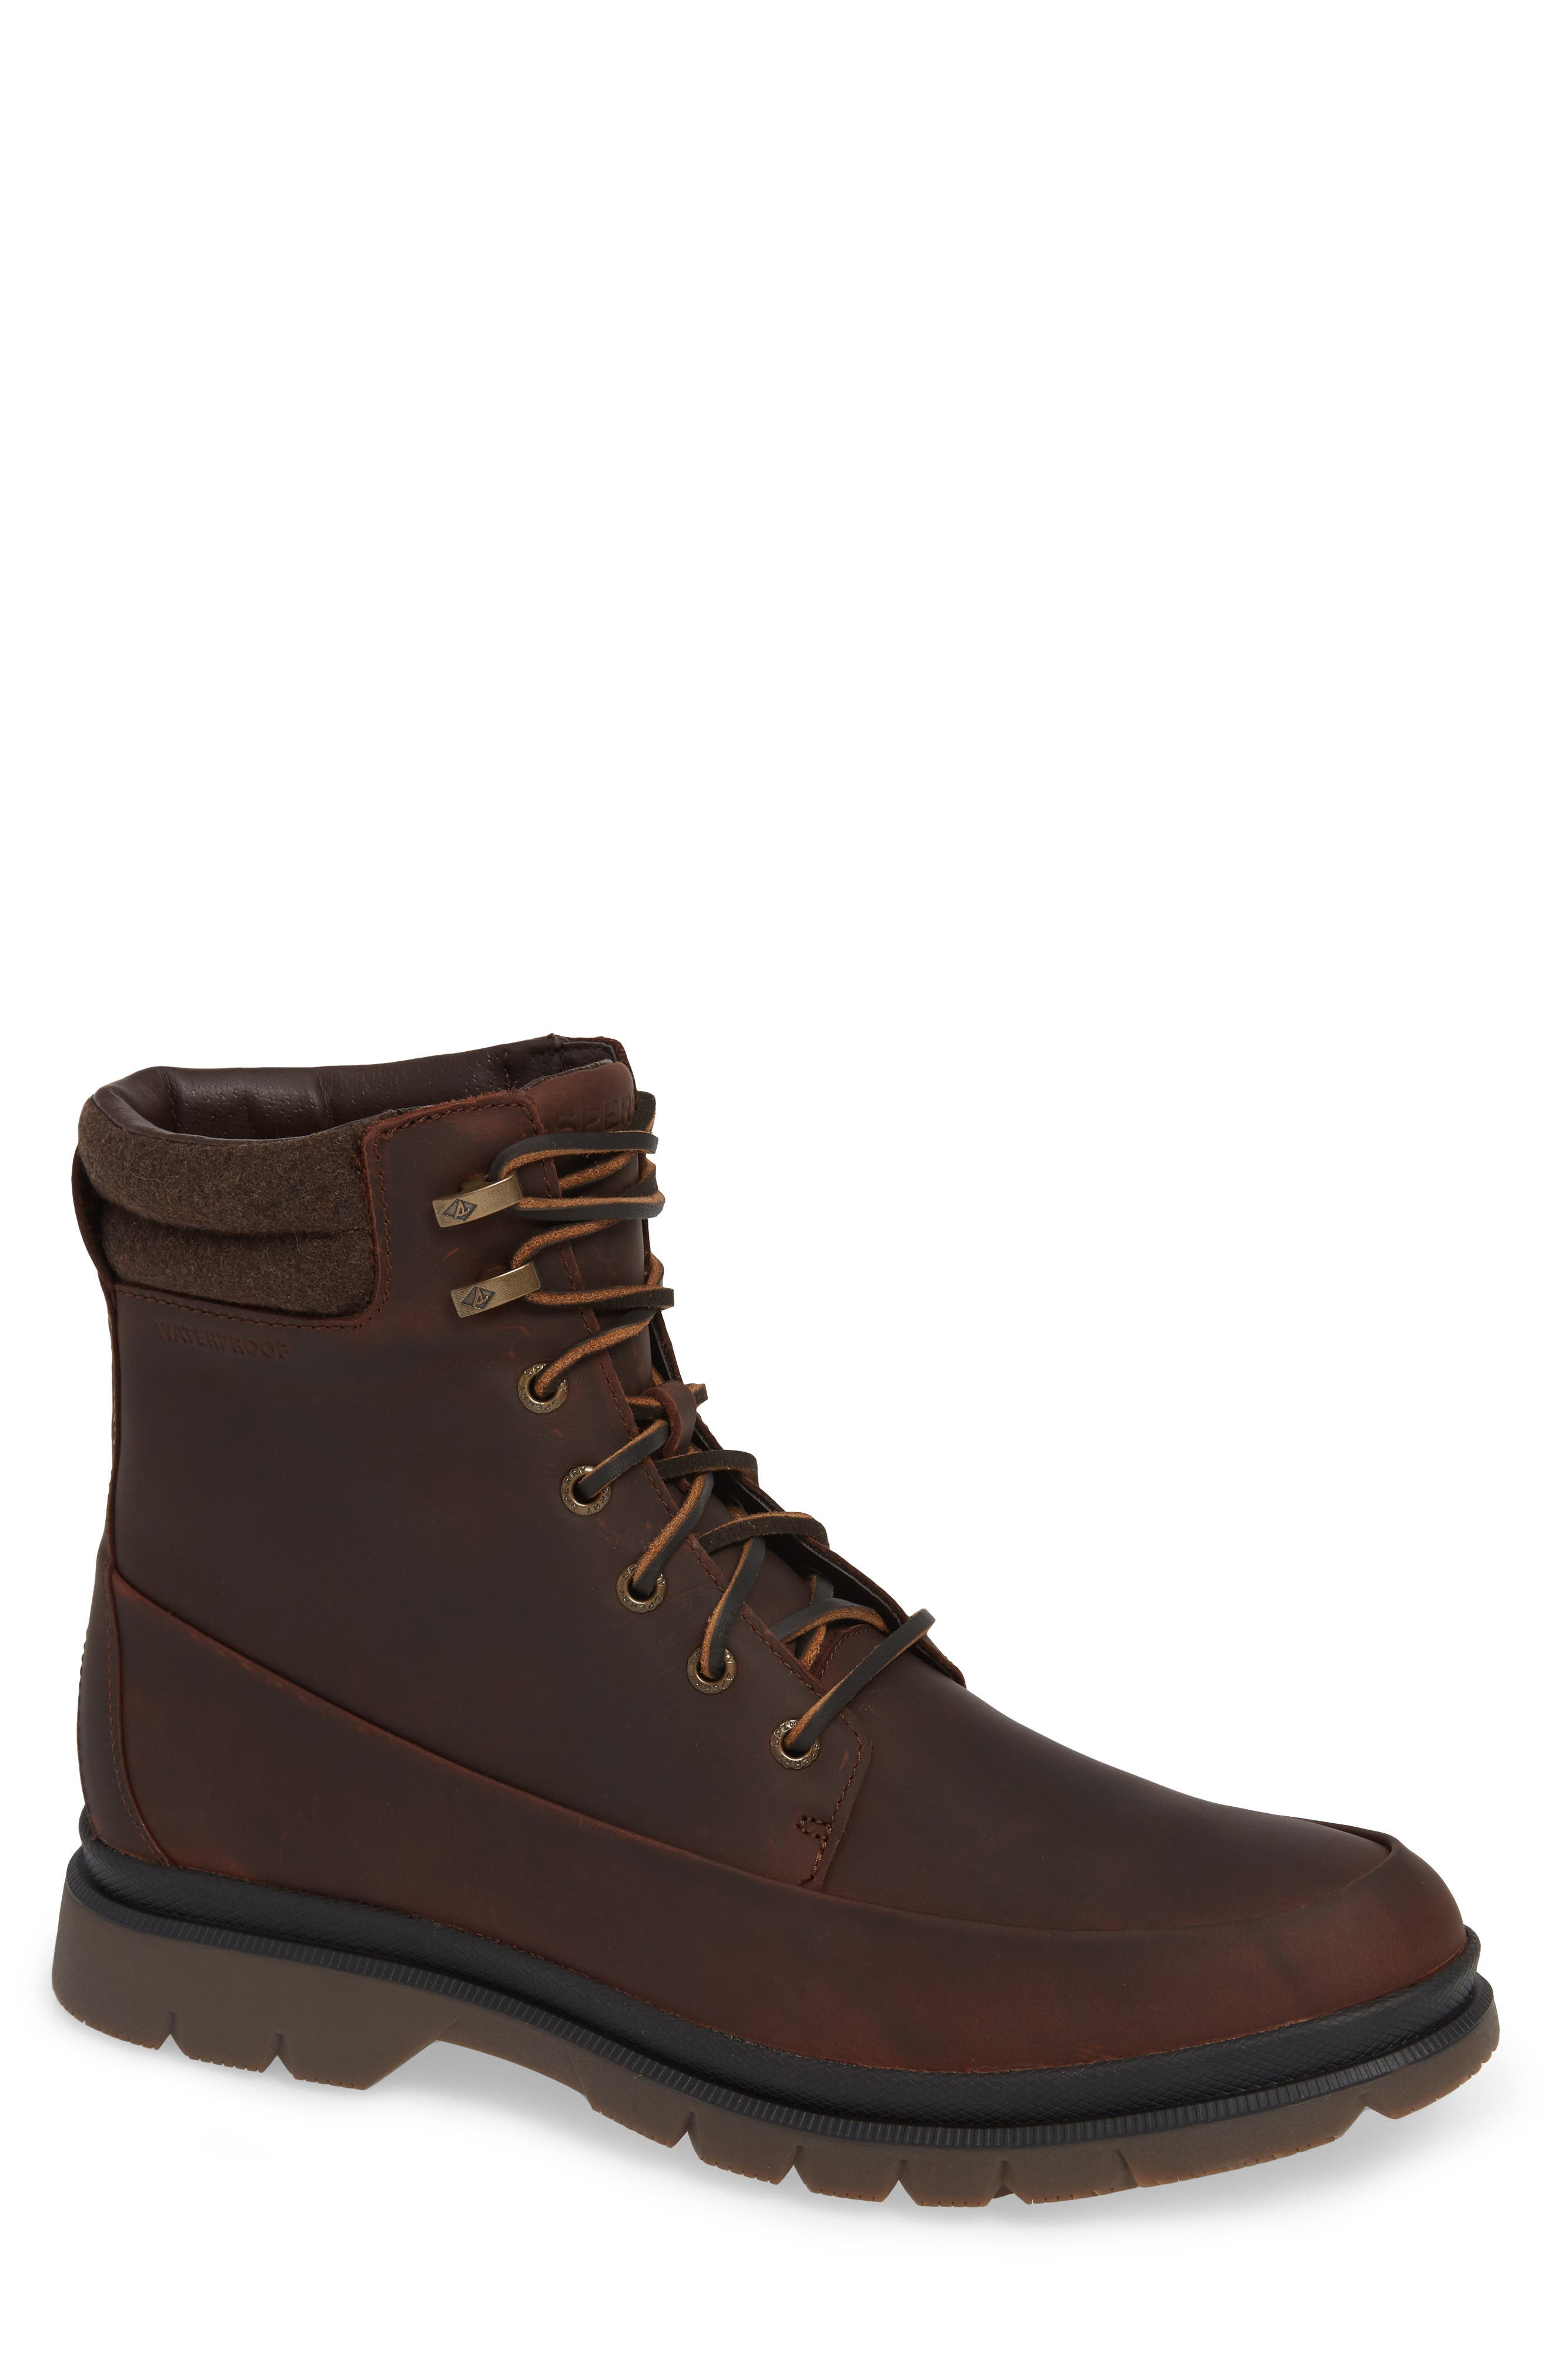 SPERRY Watertown Waterproof Moc Toe Boot, Main, color, BROWN